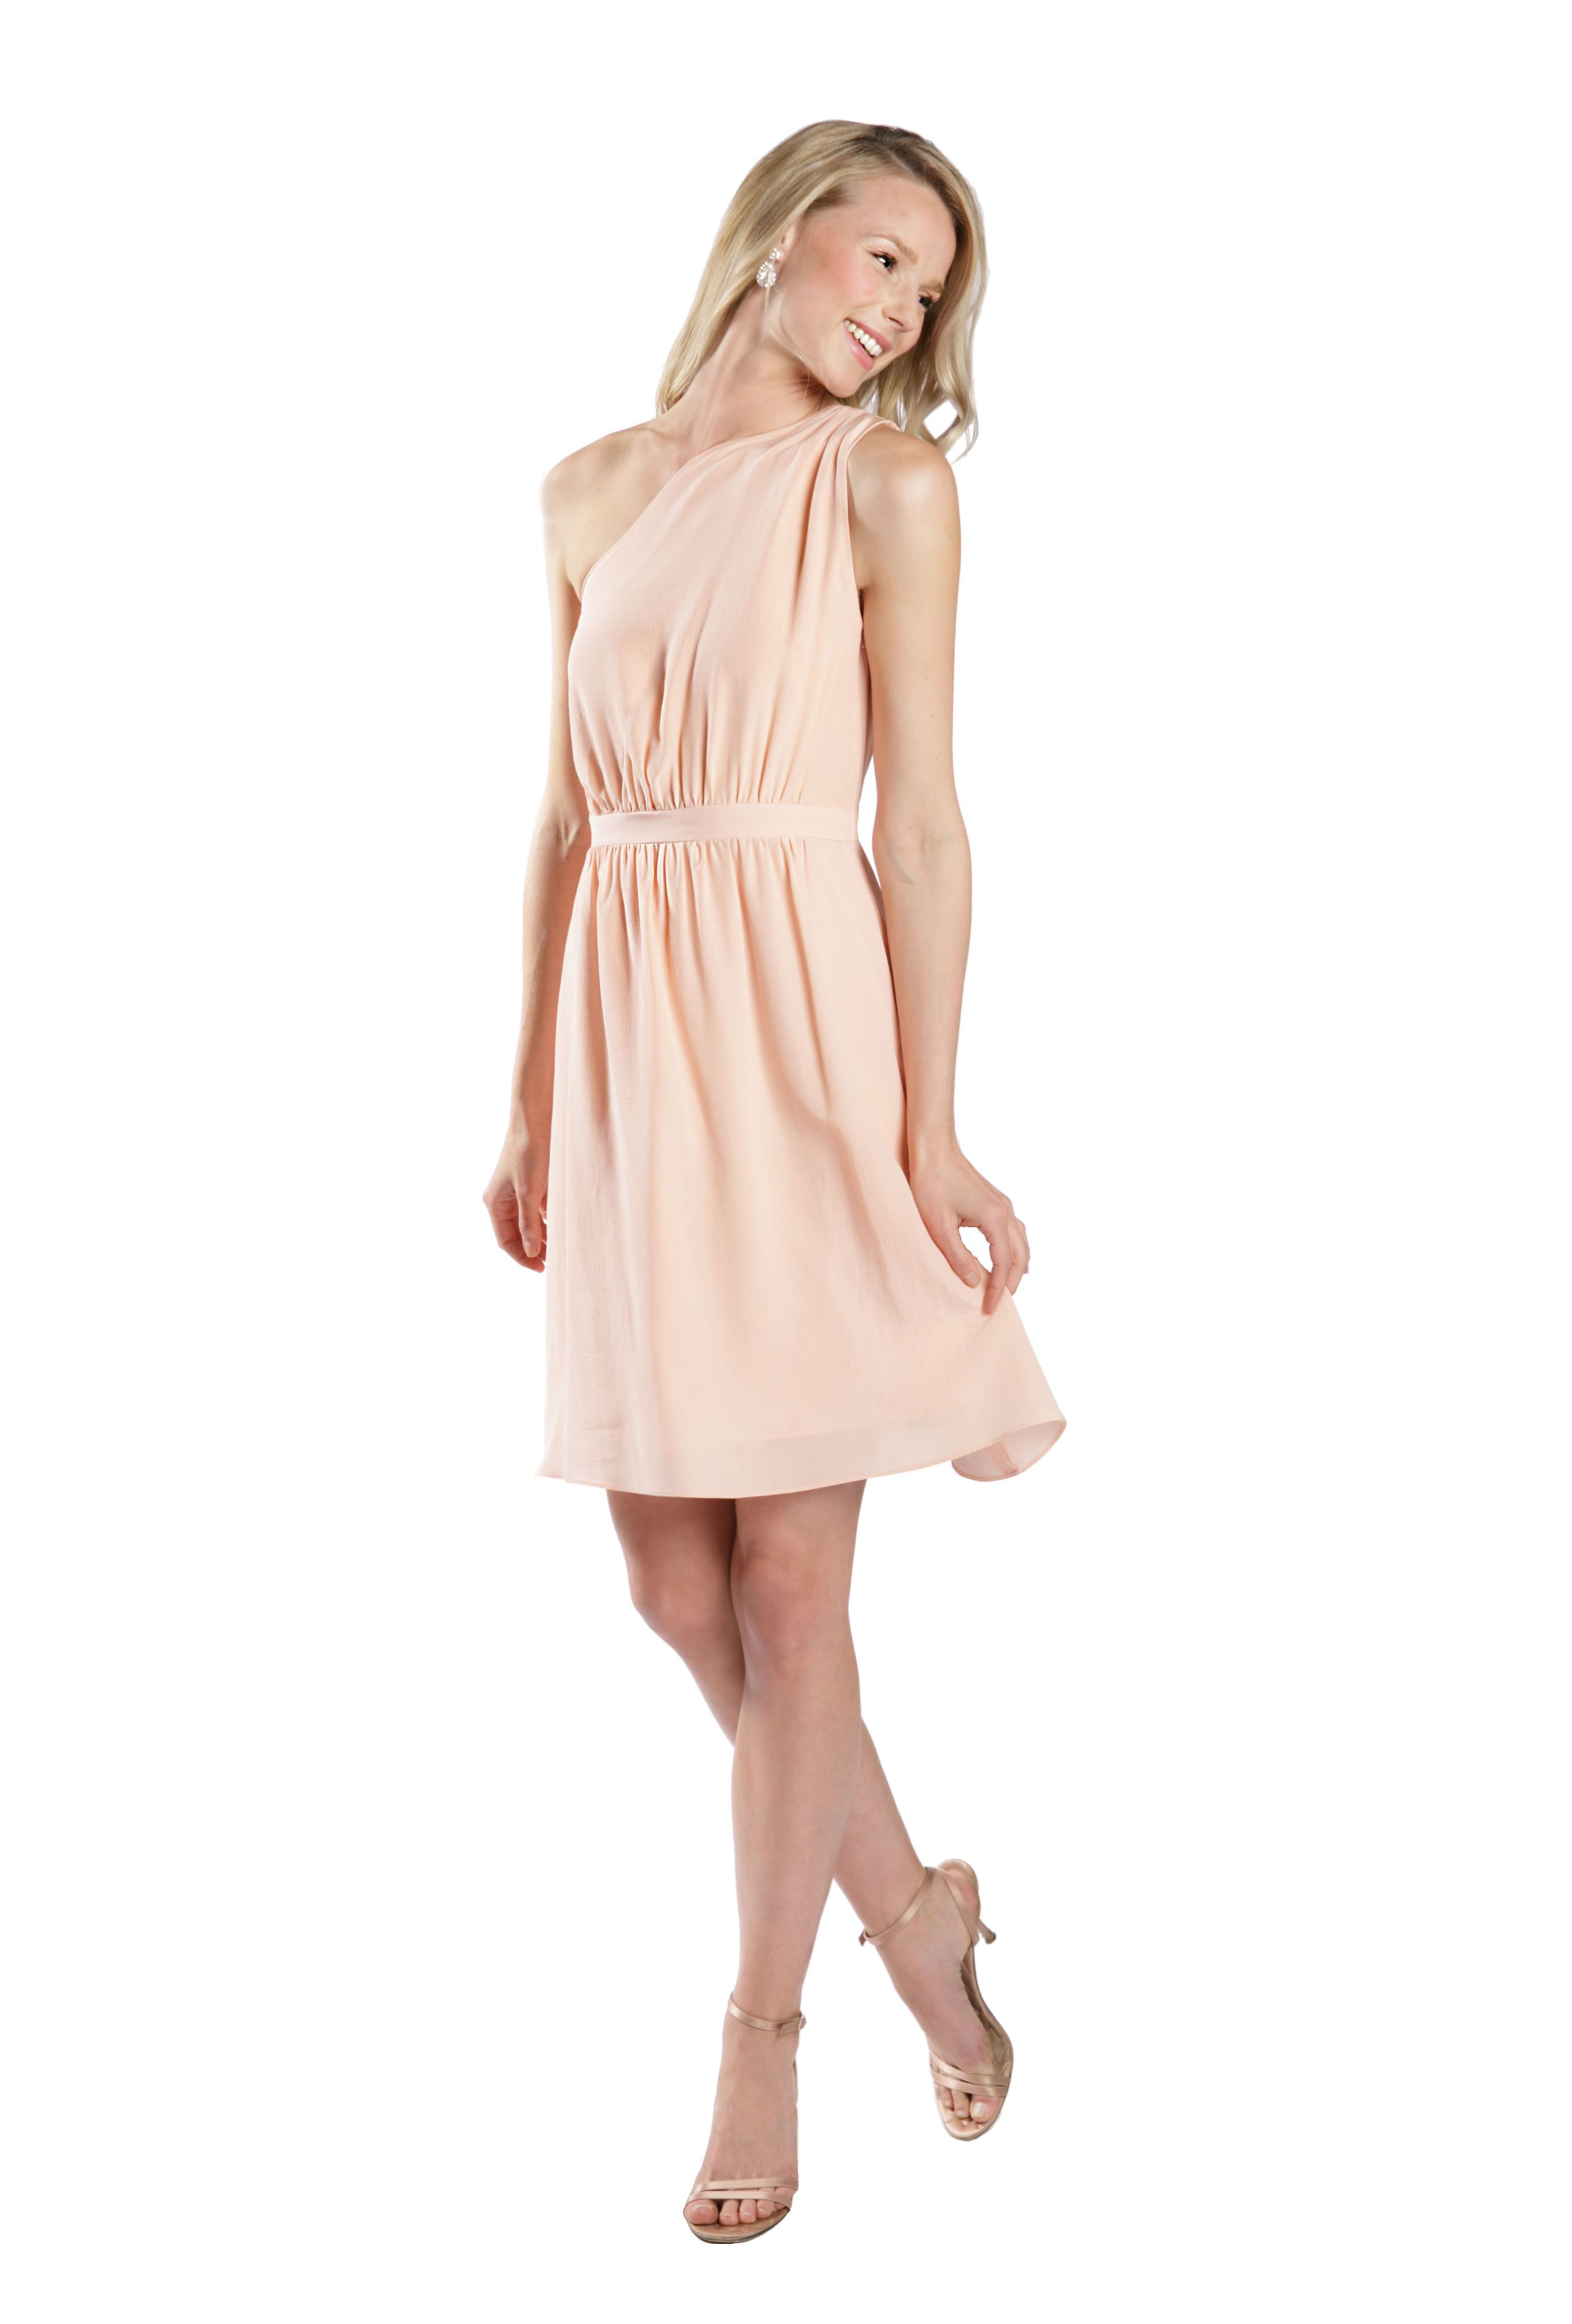 Renting wedding dresses  lulakate matte silk Haley bridesmaid dress in pink Discover more